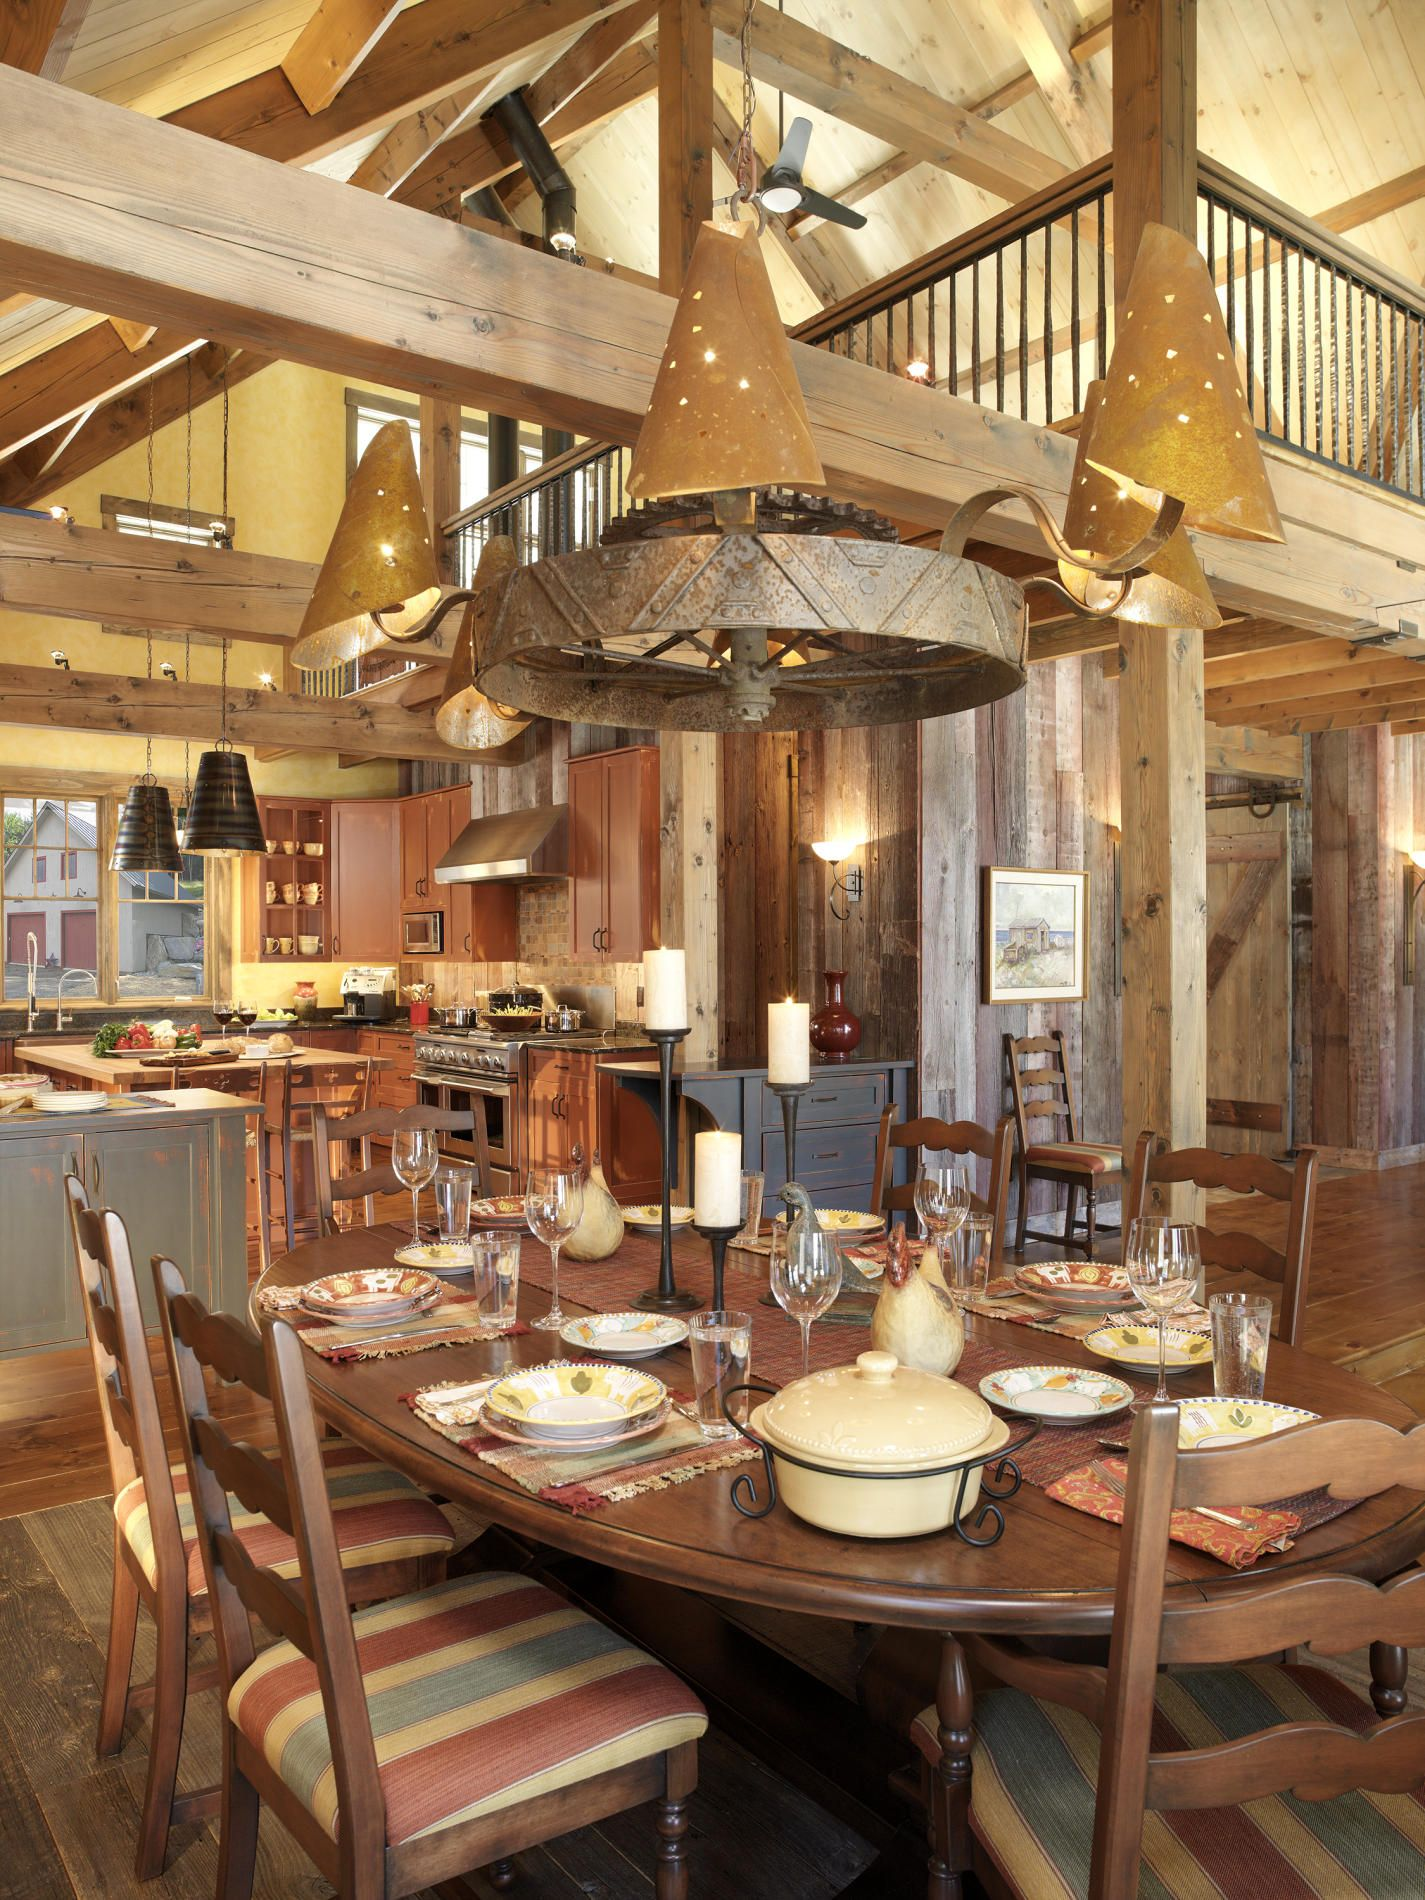 rustic dining room light fixture. Wooden Beams And An Industrial Lighting Fixture Provide Rustic Charisma To This Dining Space. * Room Light M